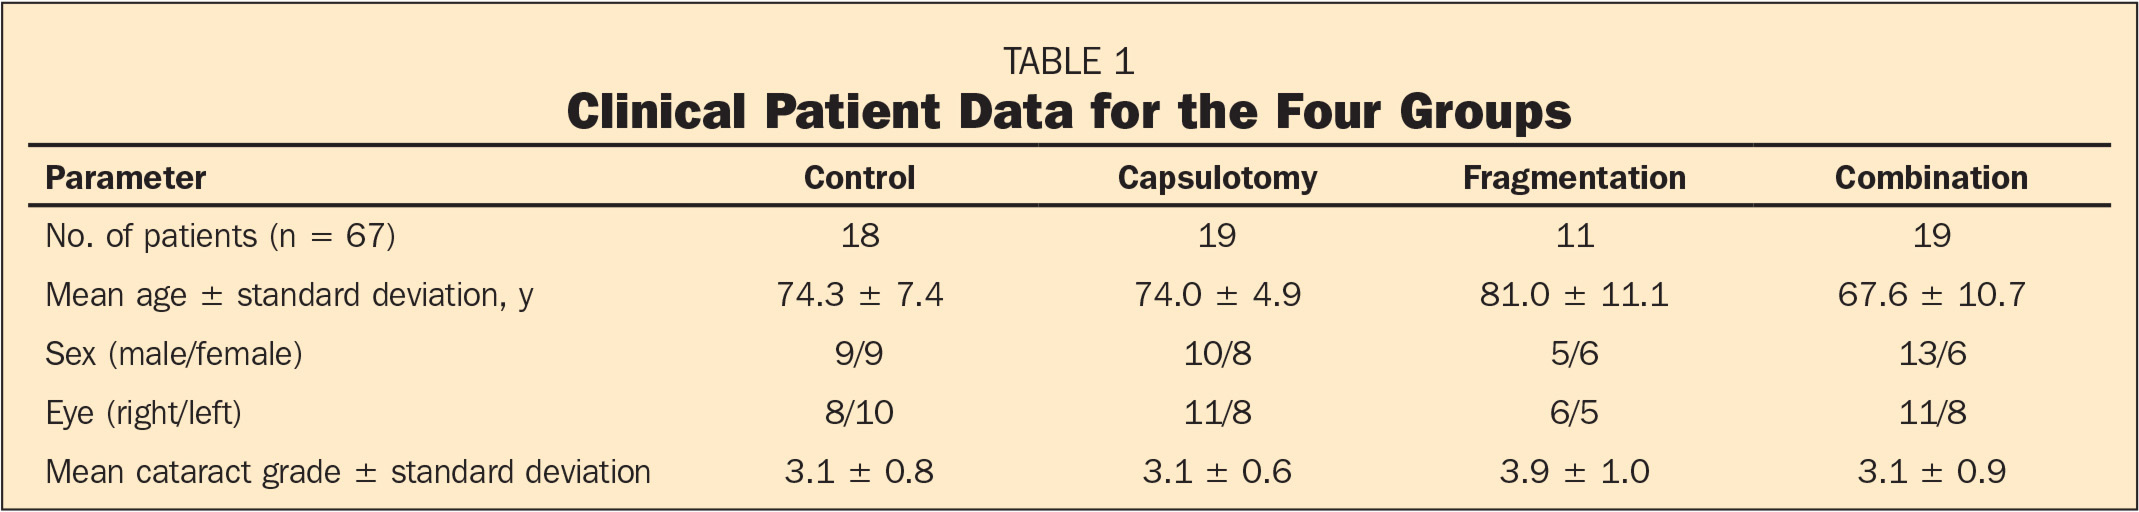 Clinical Patient Data for the Four Groups